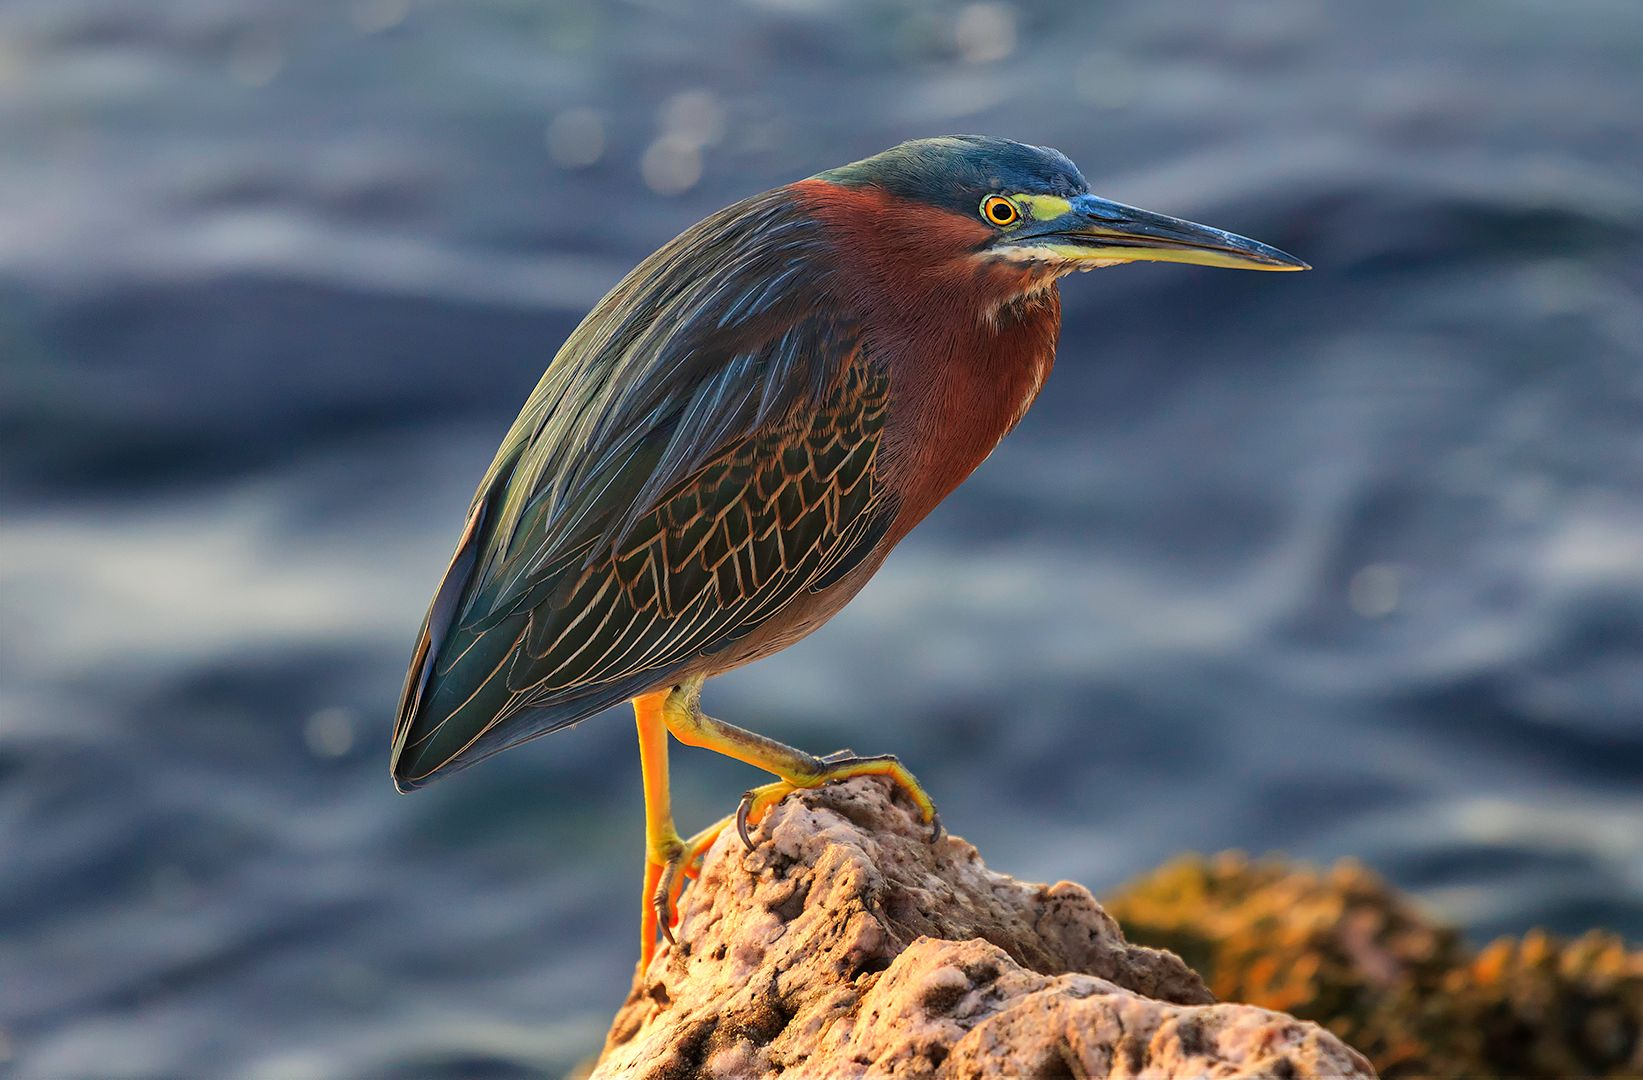 Eros Fiacconi – Green Heron by the Sea – HM